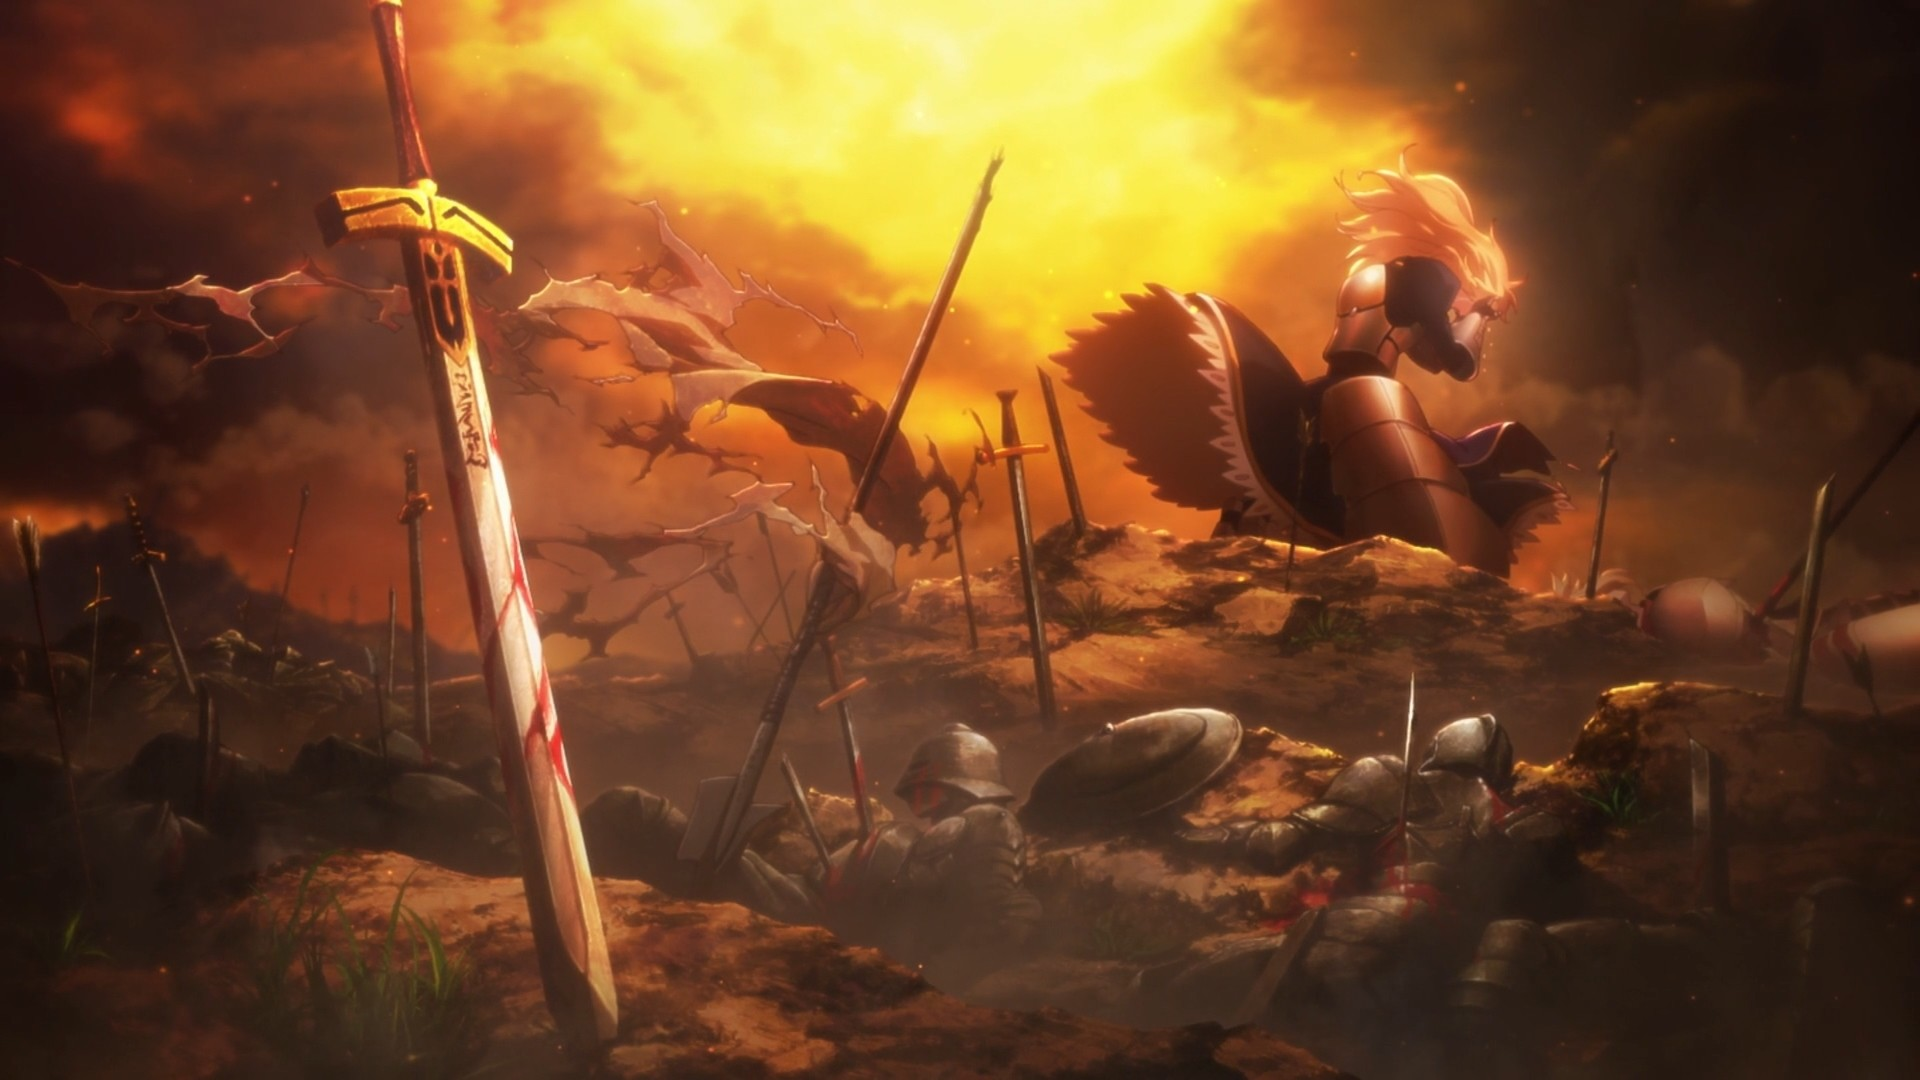 1920x1080 HorribleSubs] Fate Stay Night - Unlimited Blade Works - 13 [1080p .